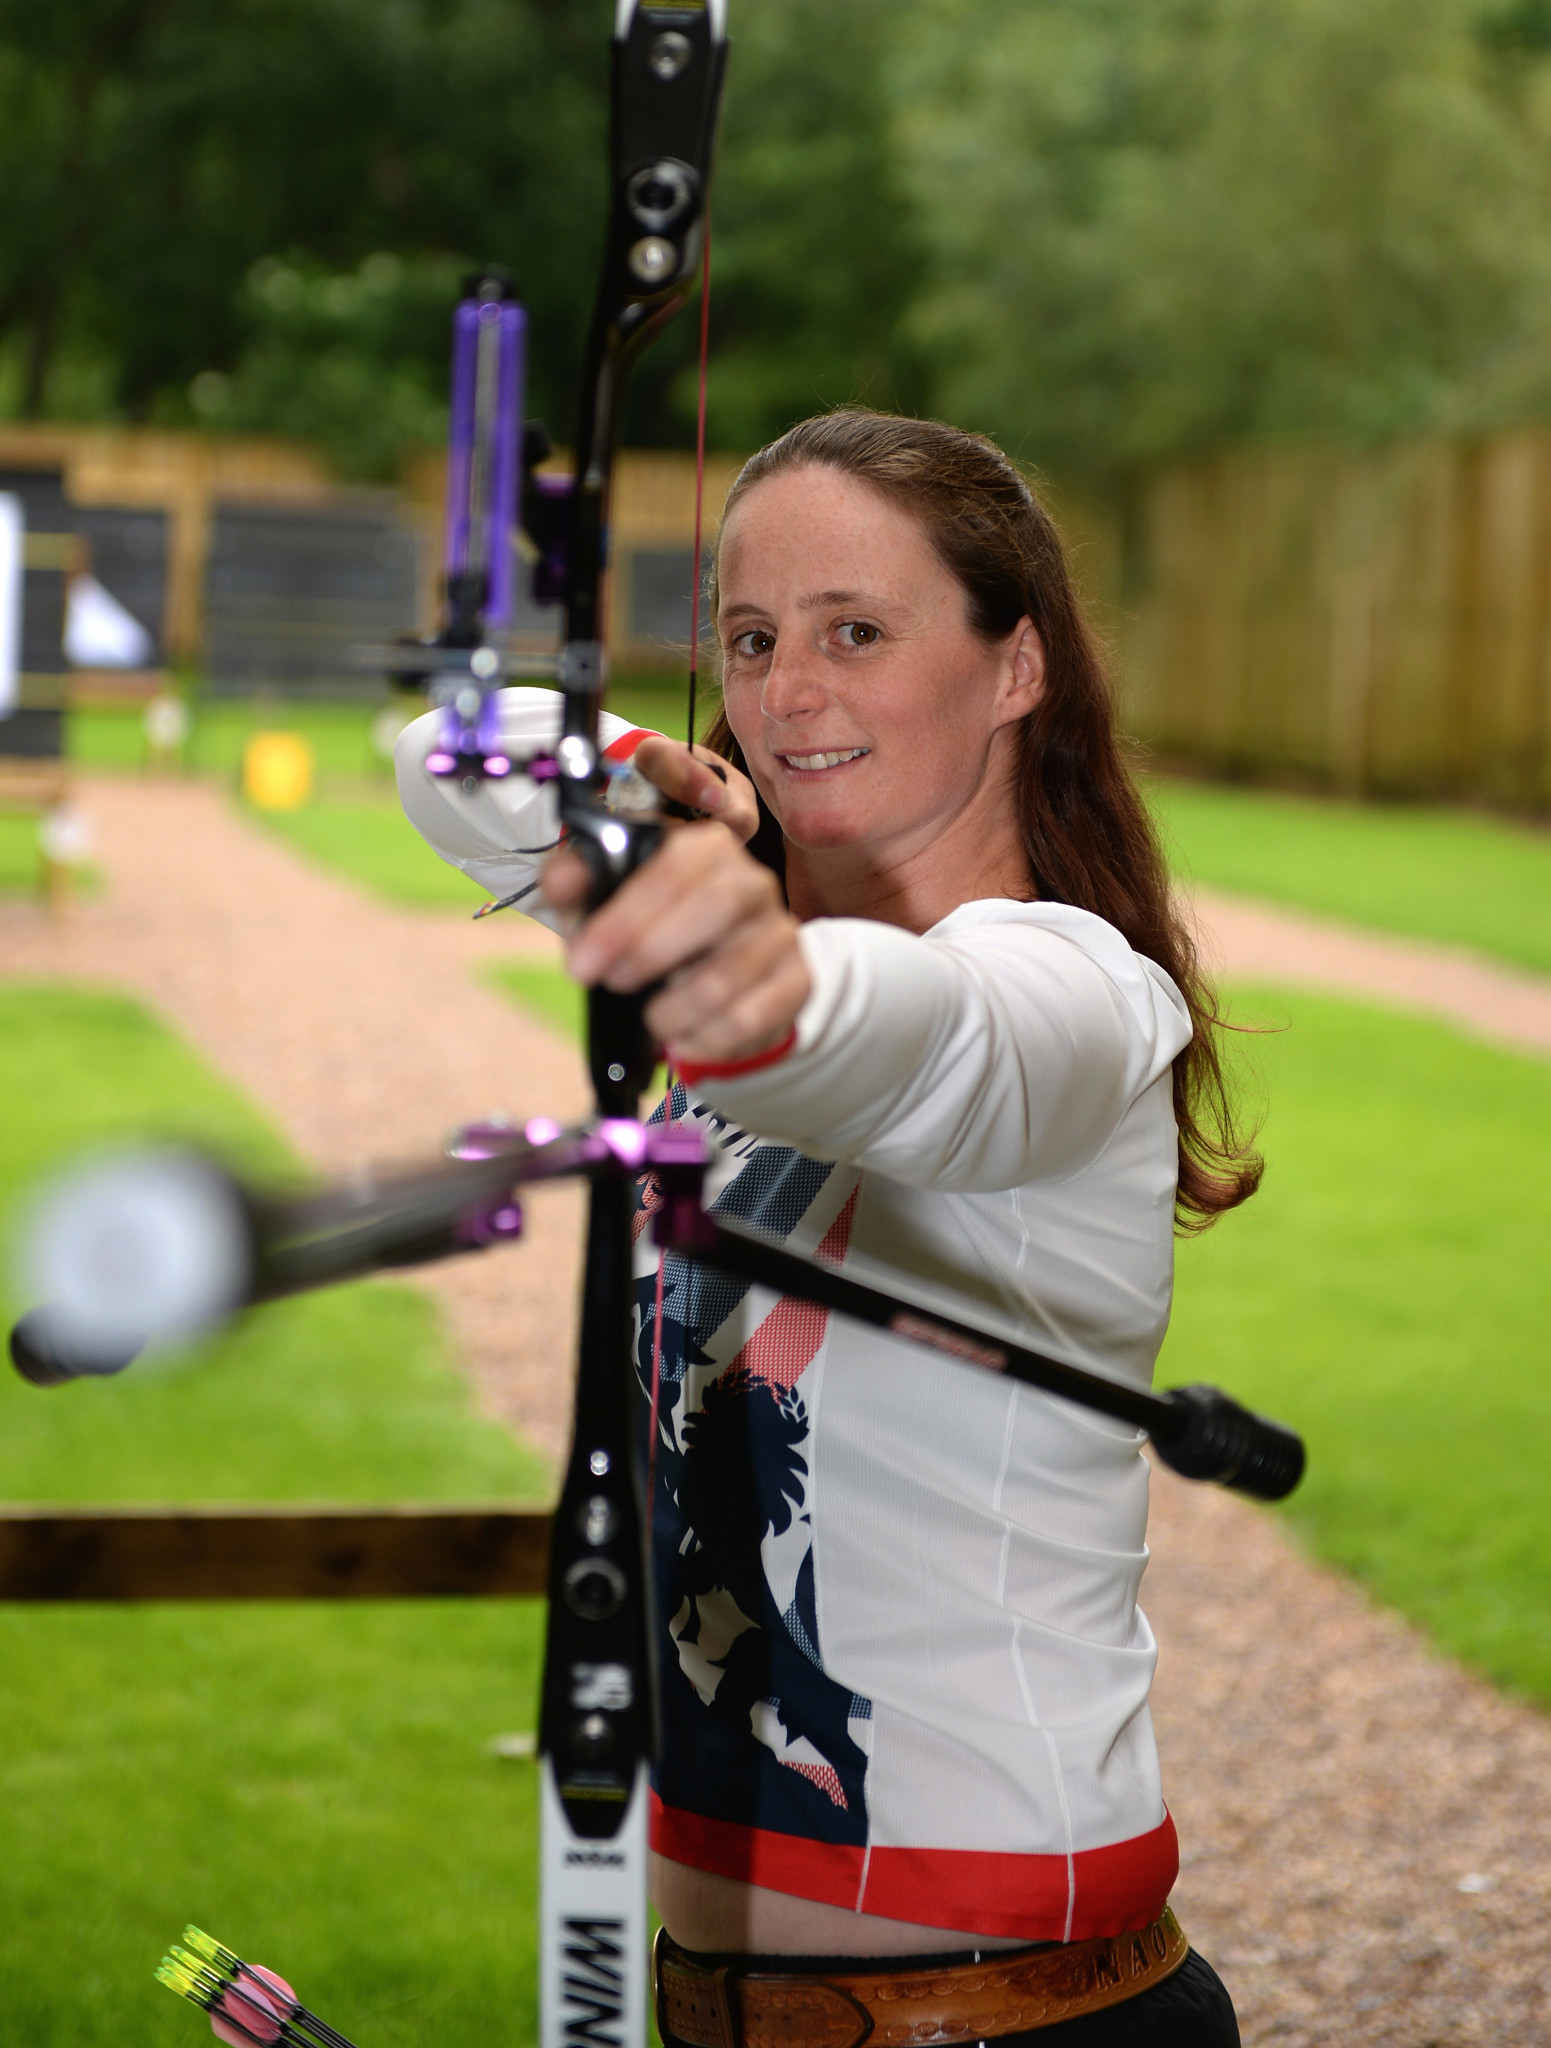 Britain names archery teams for Tokyo 2020 Olympics and Paralympics